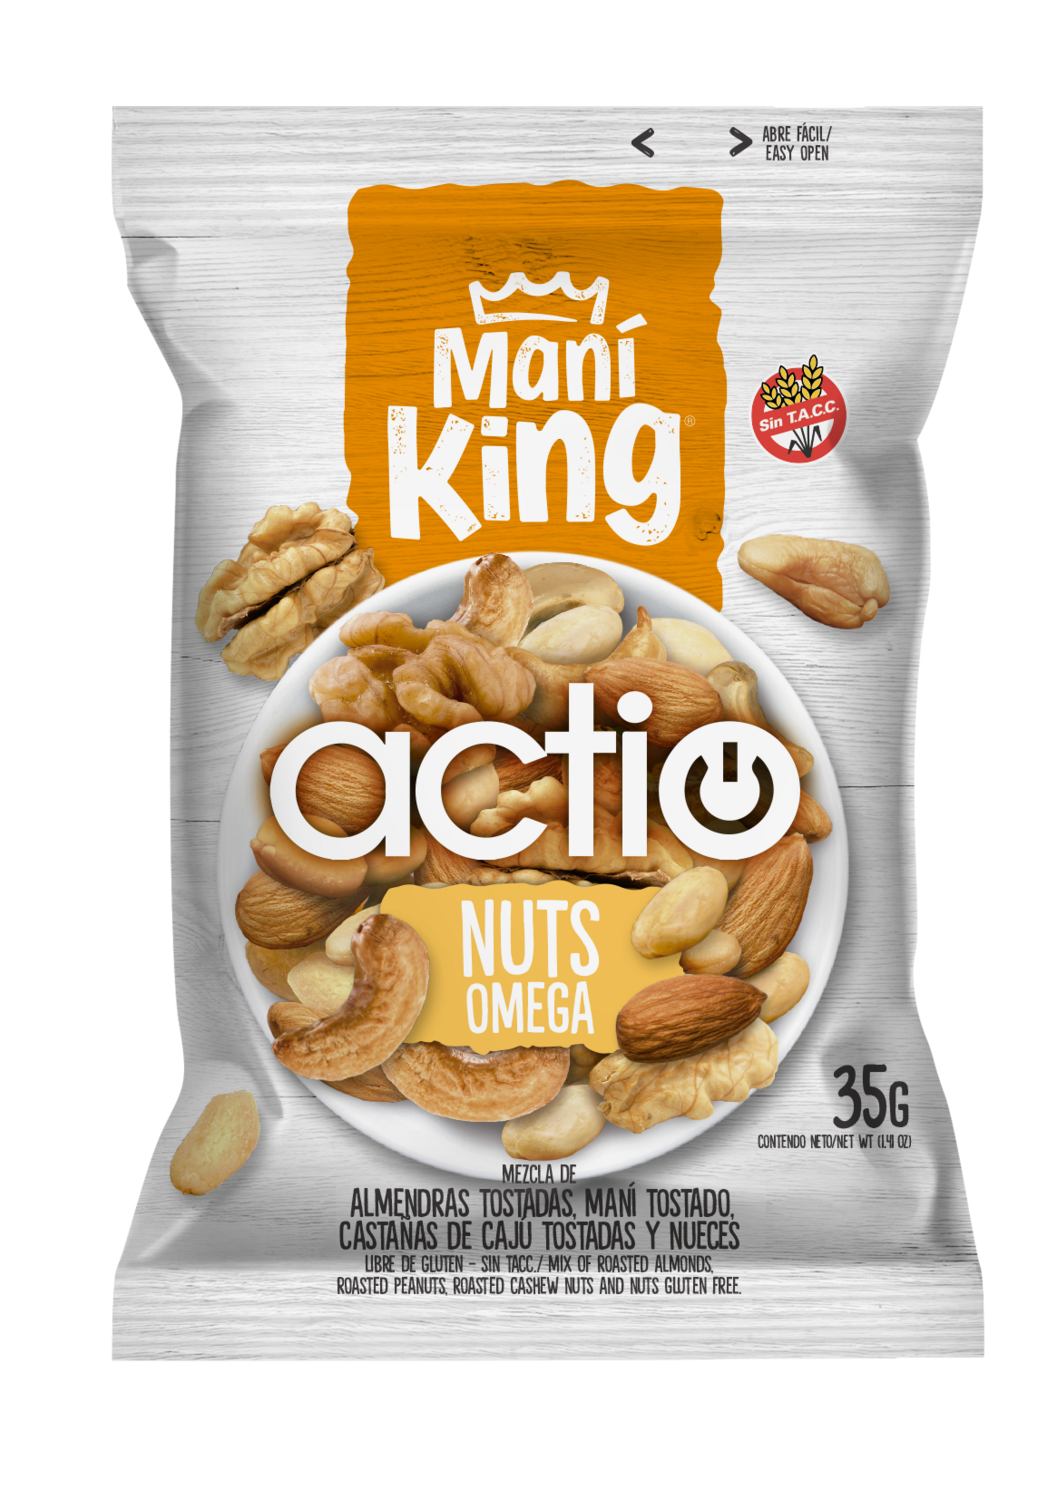 Mani king actio nuts x35grs